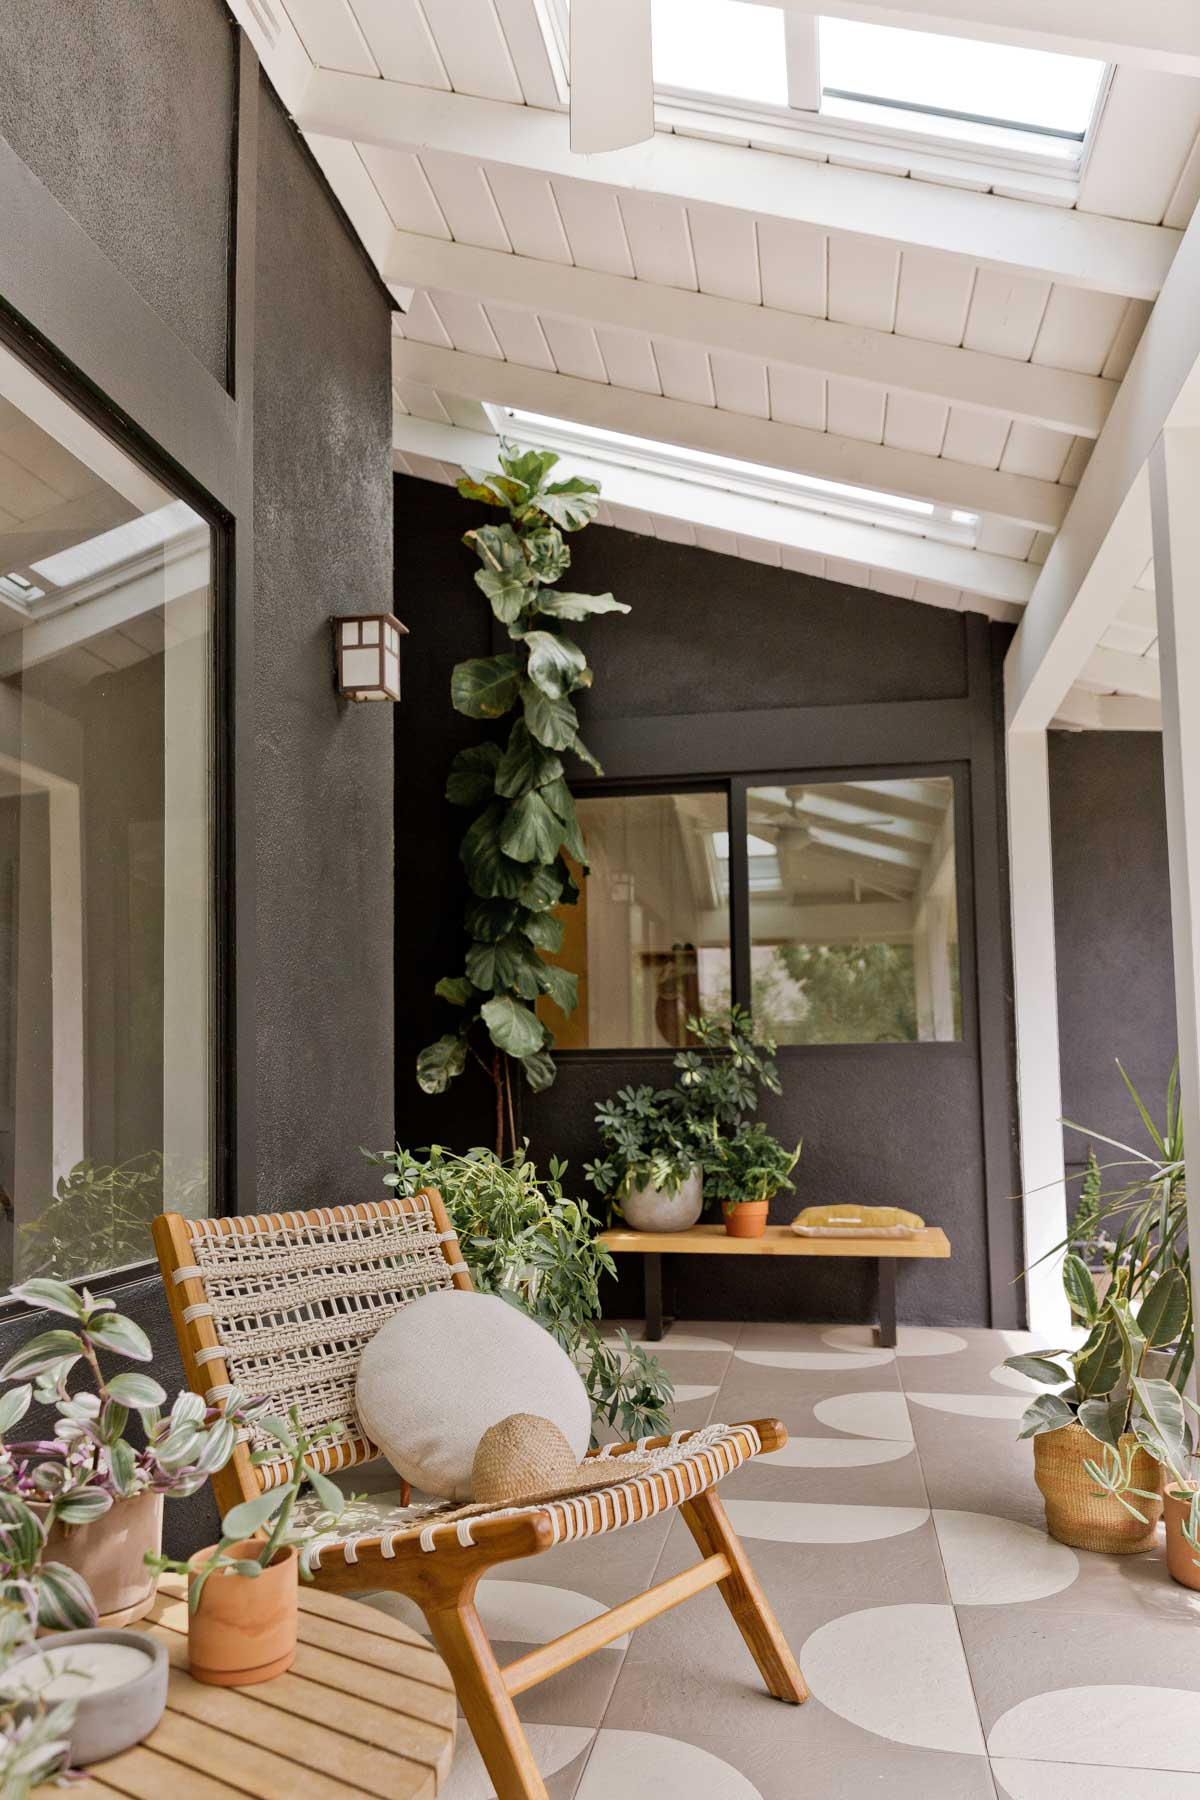 Modern black front porch with painted floor tiles and modern furniture.